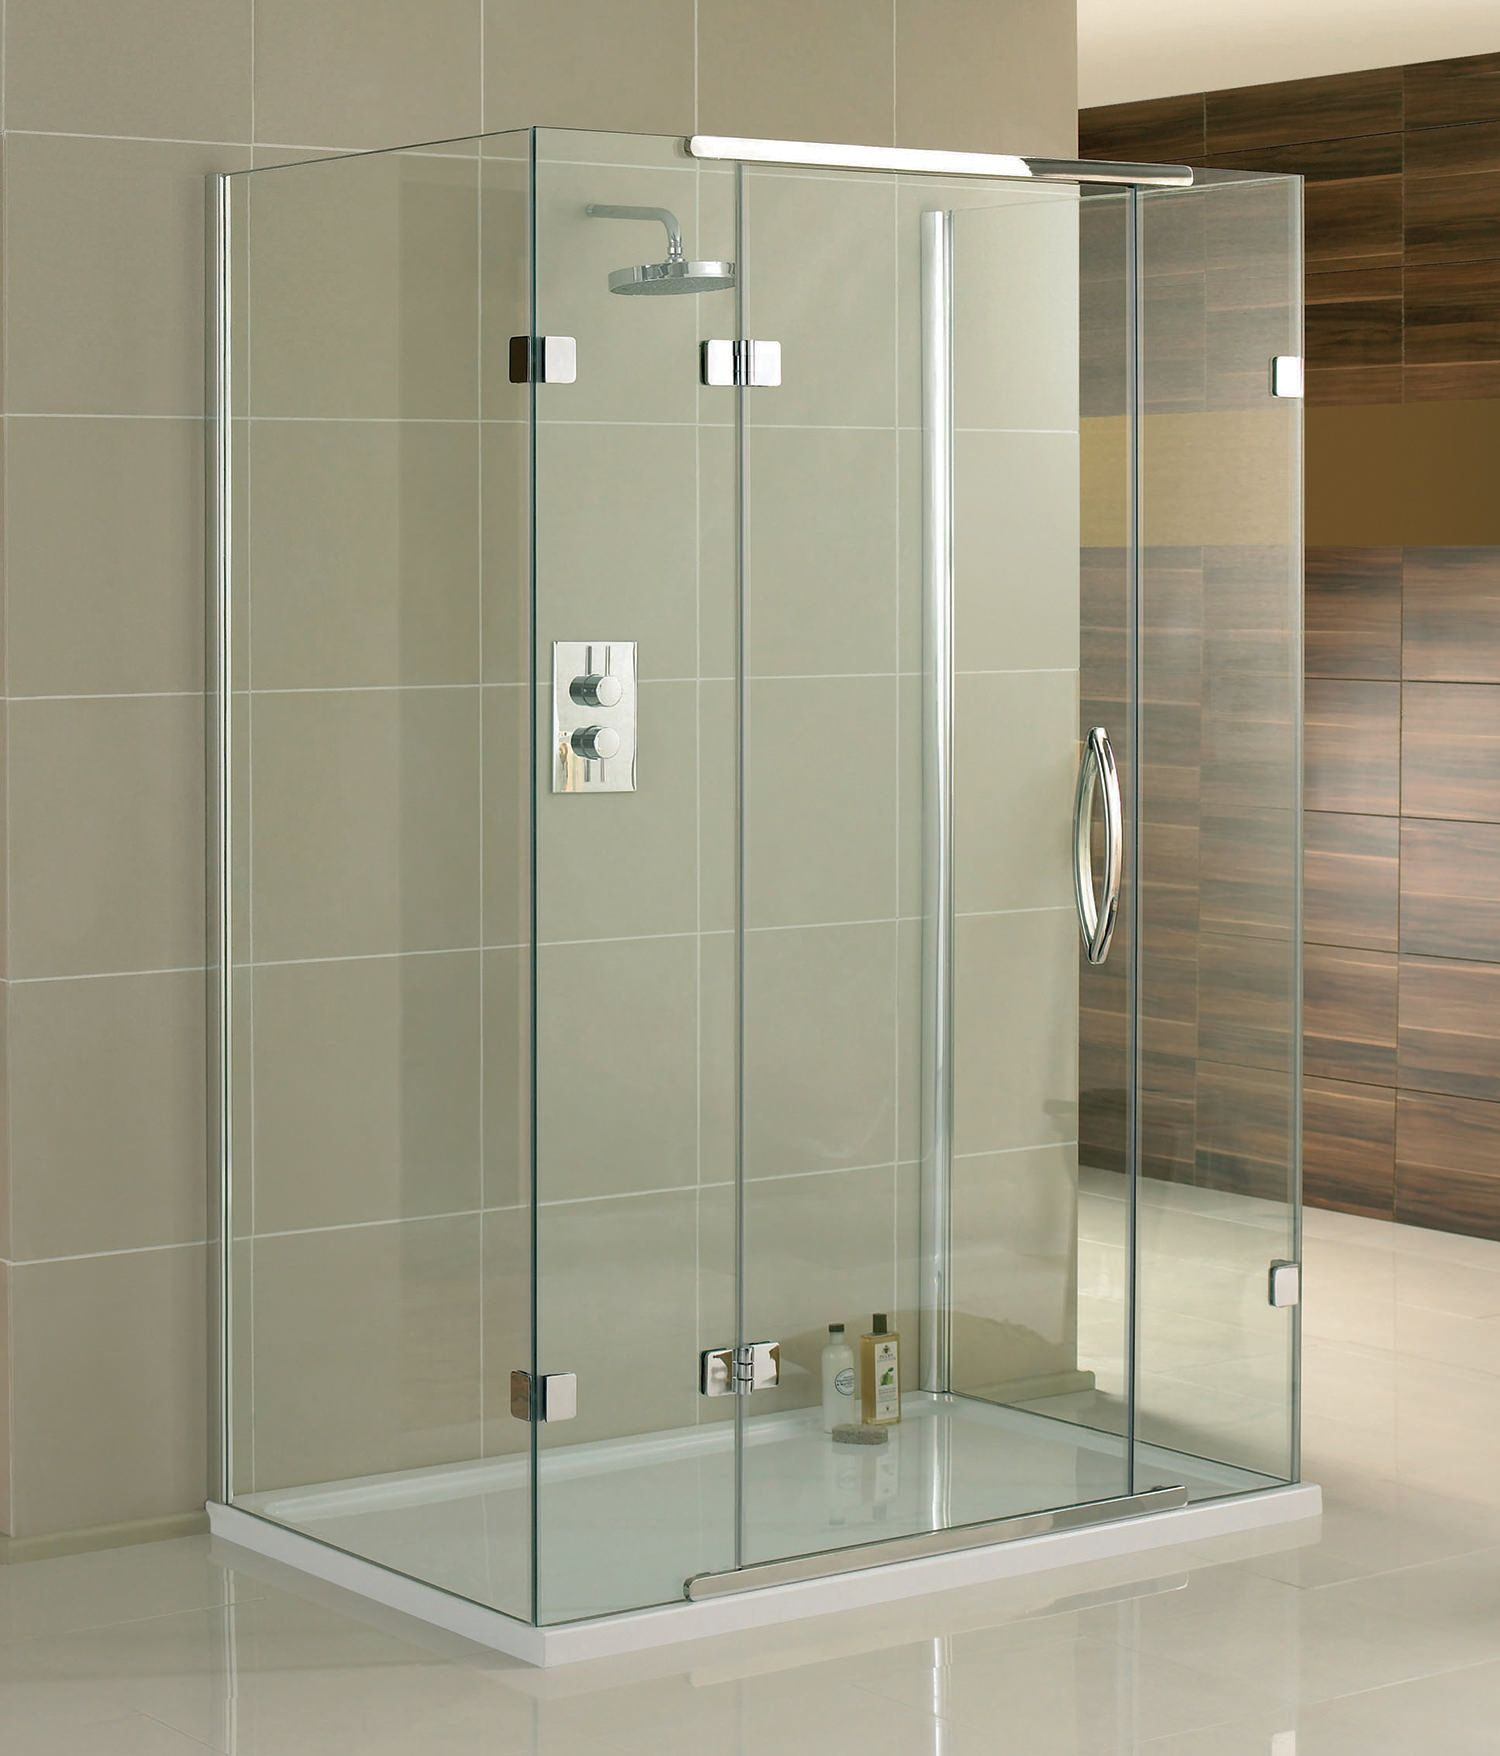 Aquadart Inline 3 Sided Hinged Door Enclosure 900 X 800mm Aq1034 Frameless Shower Enclosures Glass Shower Enclosures Shower Enclosure